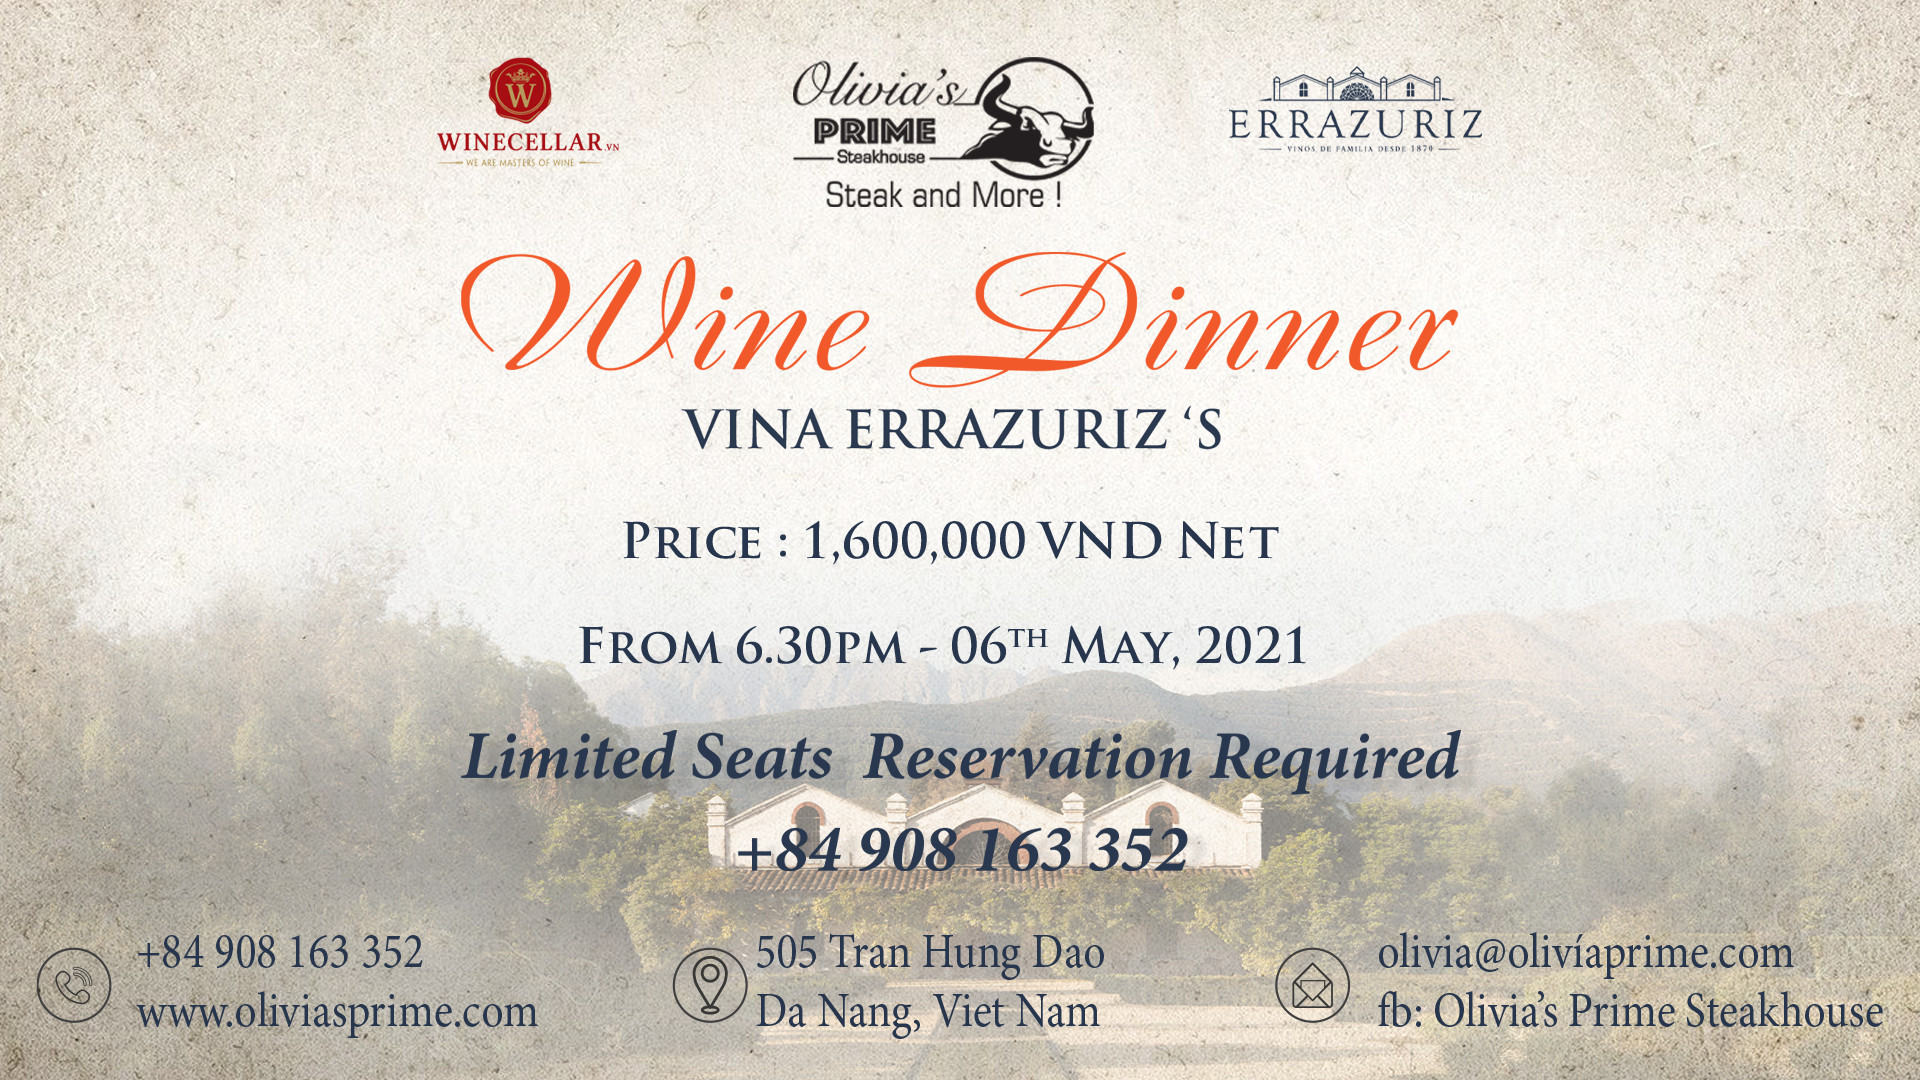 Olivia's Prime Steakhouse - Wine Dinner Vina Errazuriz